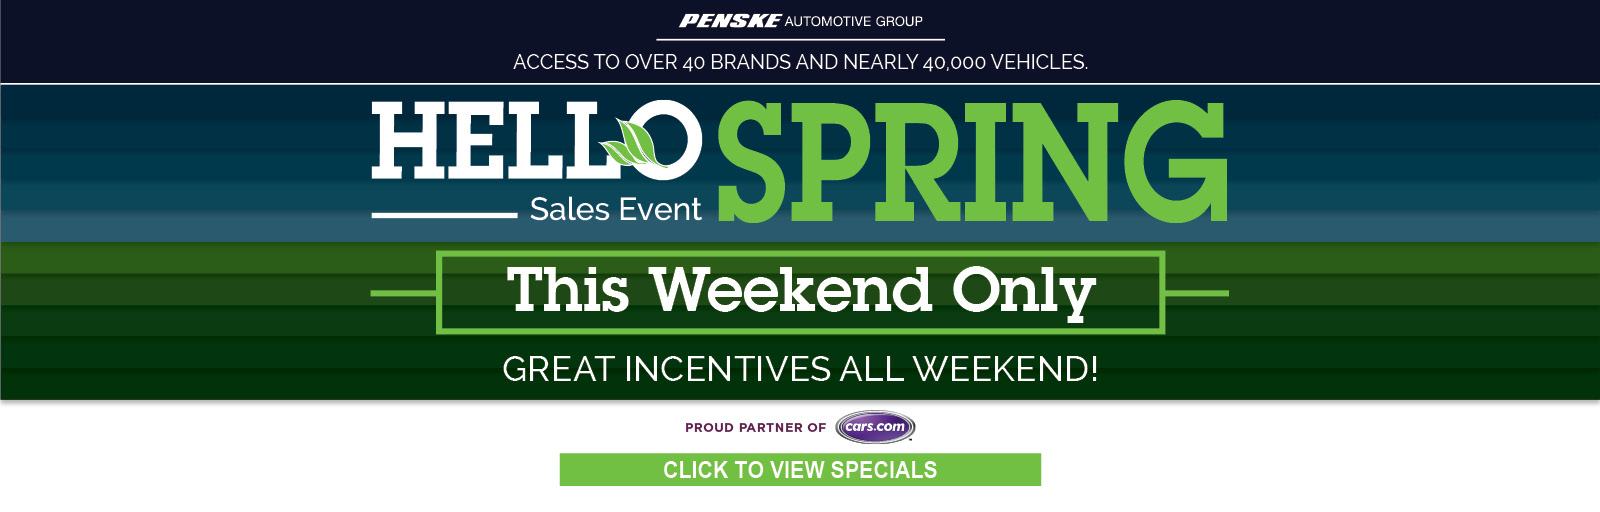 Hello Spring Sales Event